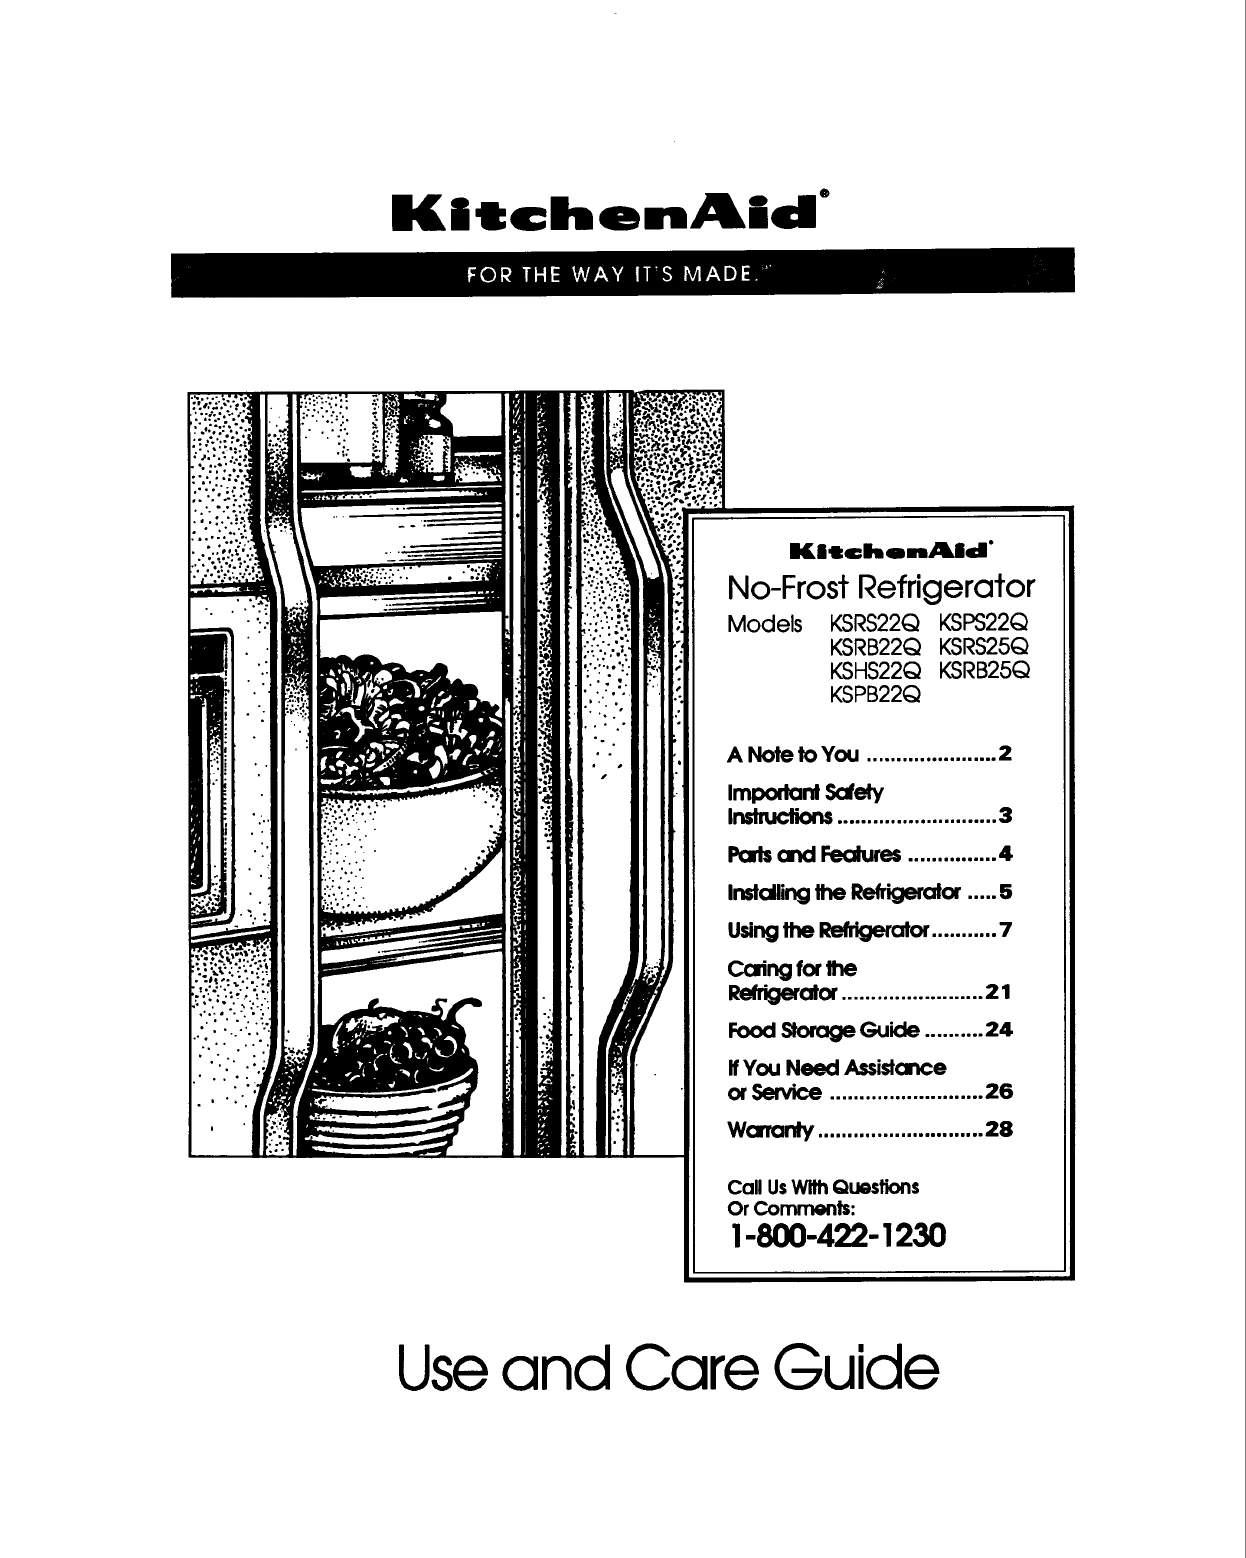 Kitchenaid Refrigerator Ksrs25q User Guide